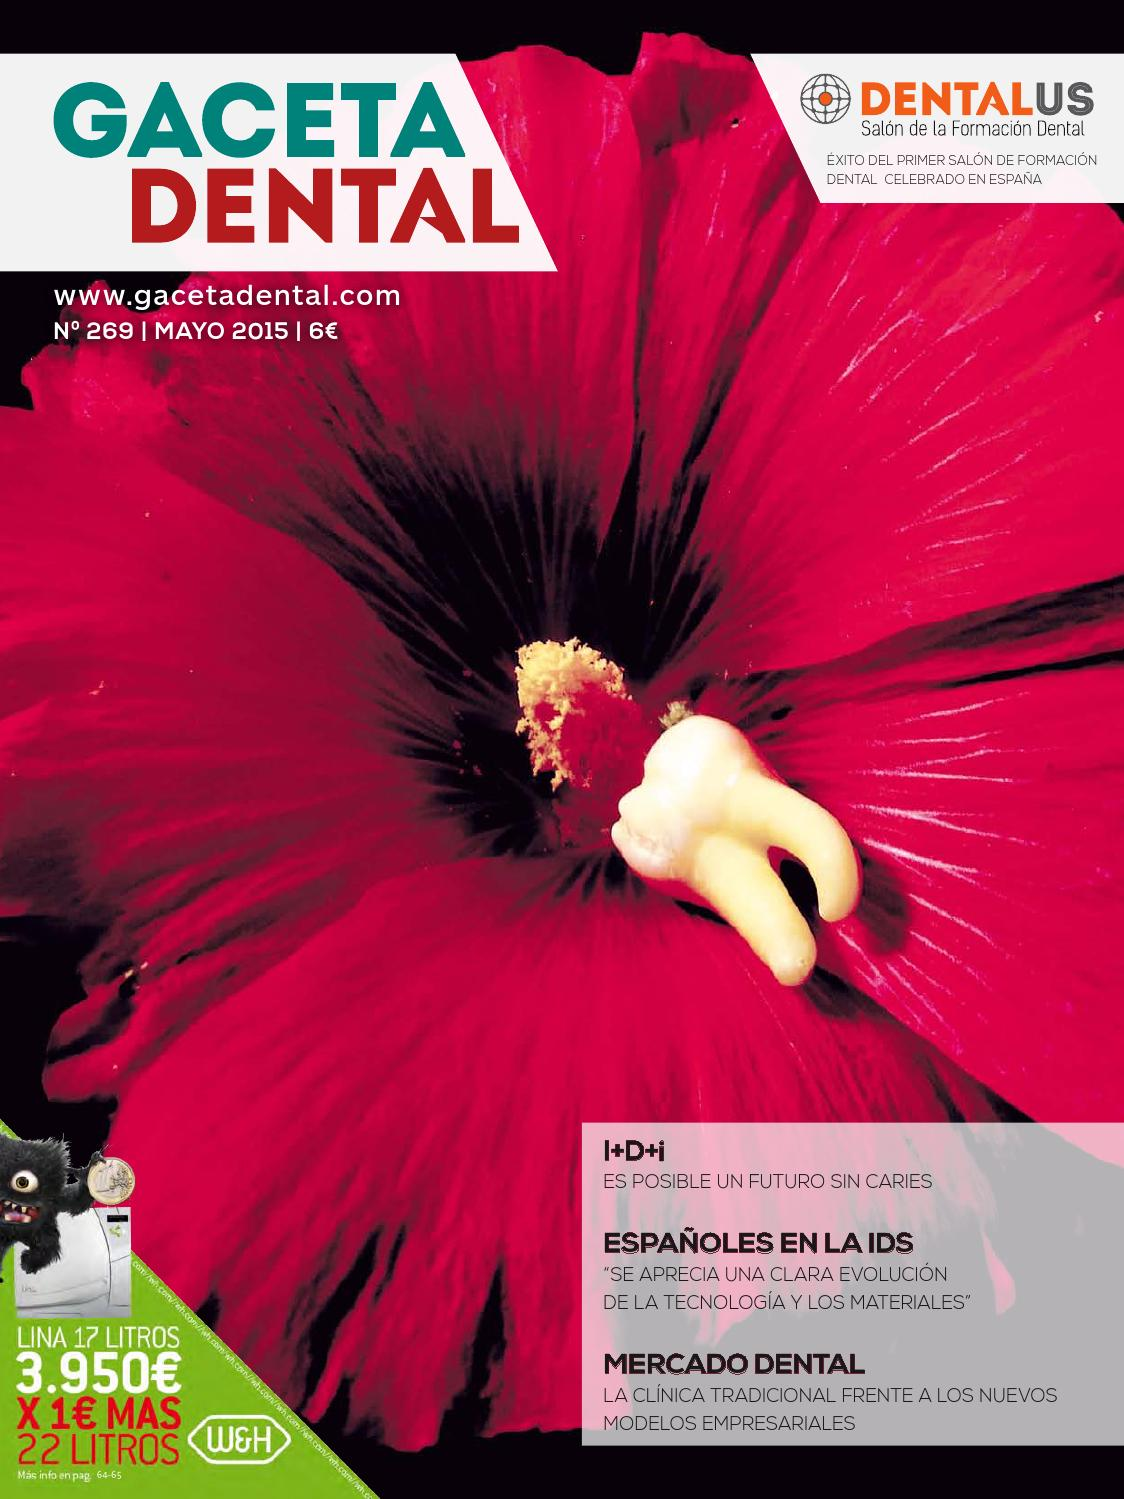 Gaceta Dental - 269 by Peldaño - issuu